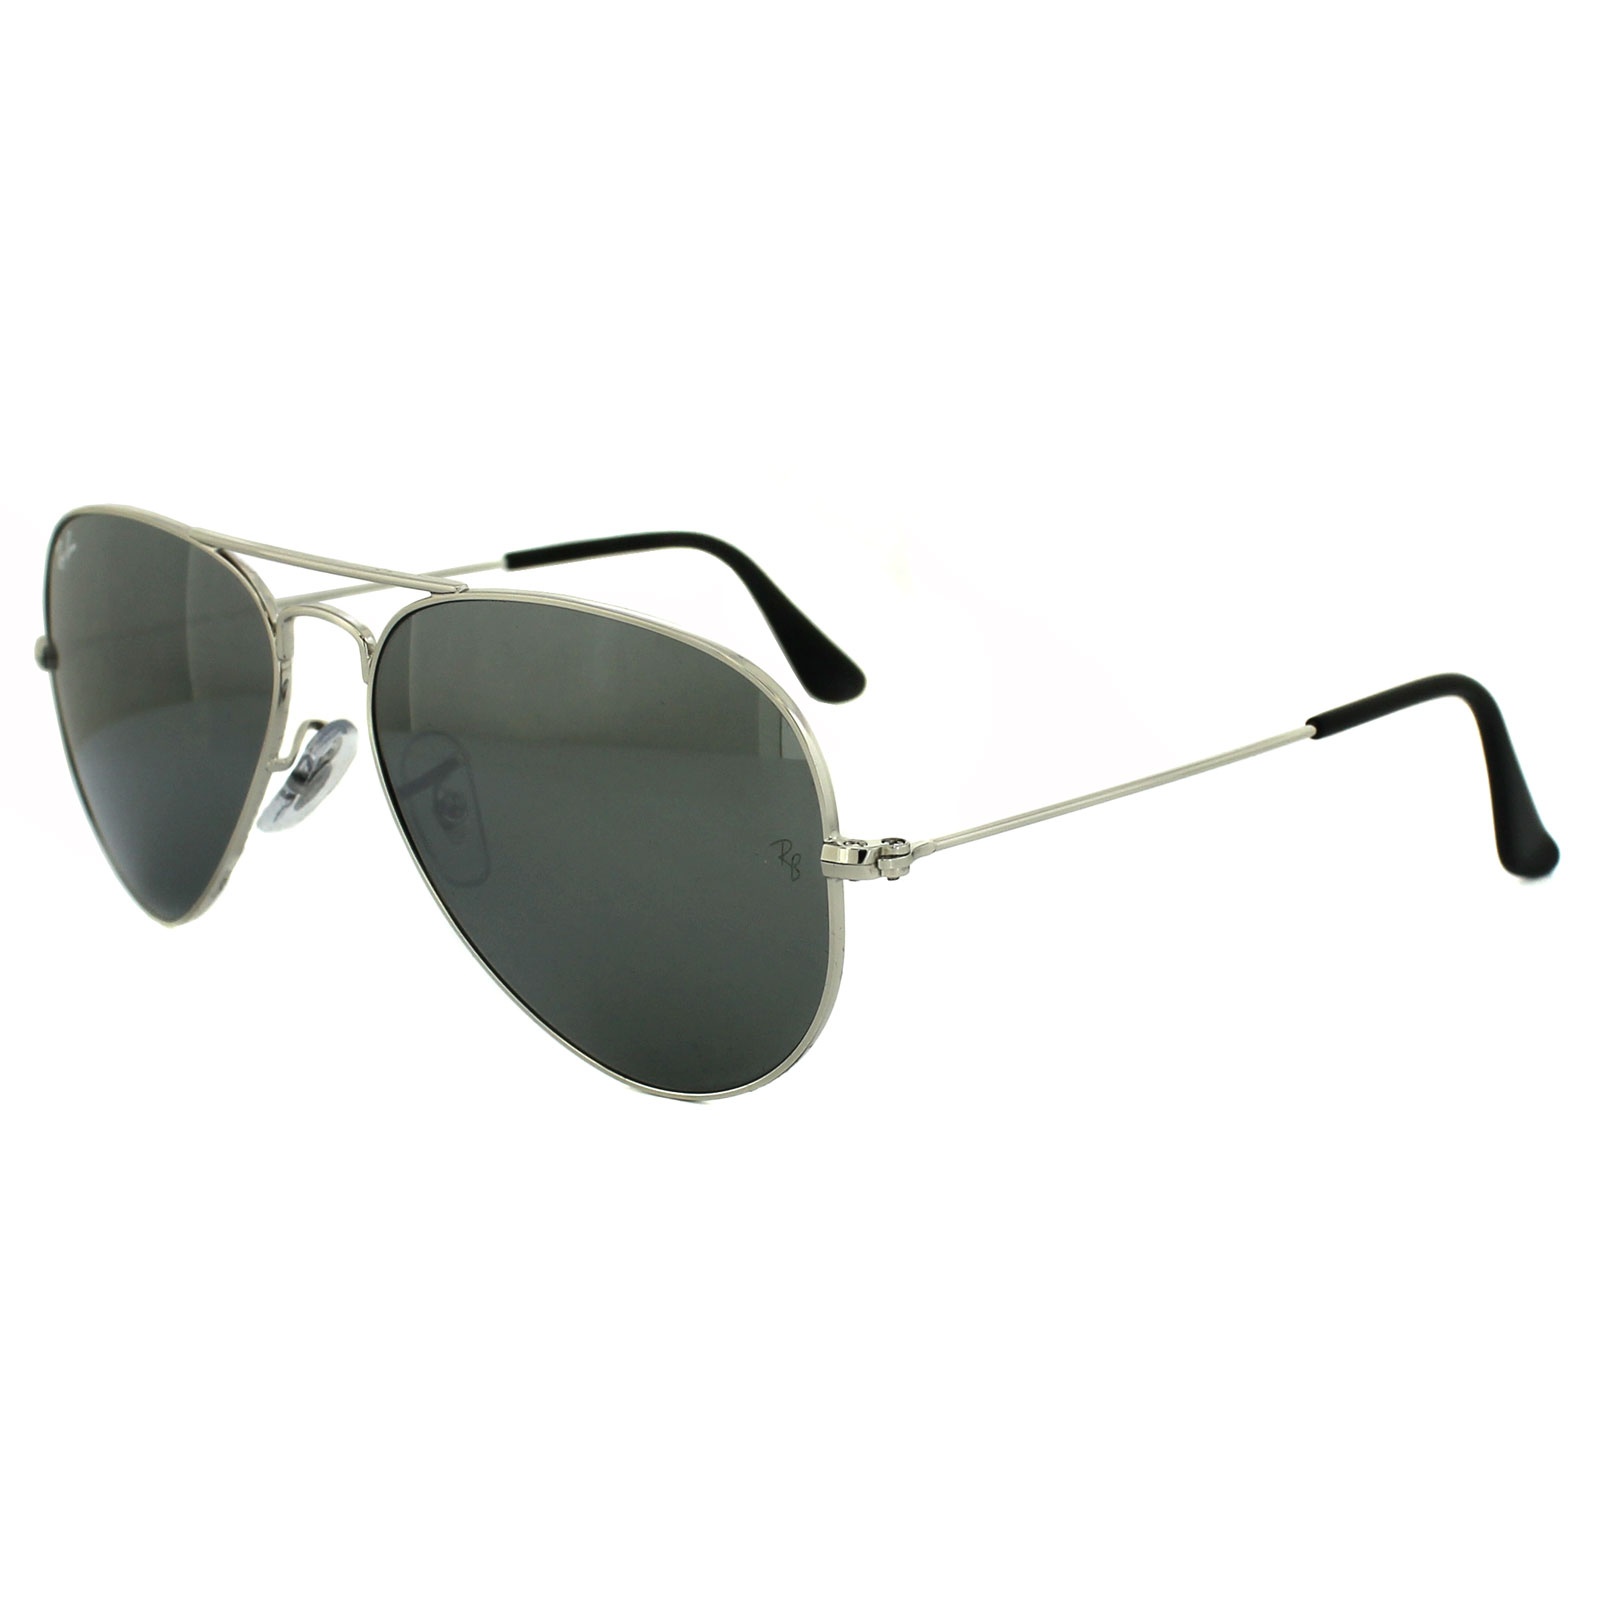 Cheap Ray Bans Sunglasses Uk